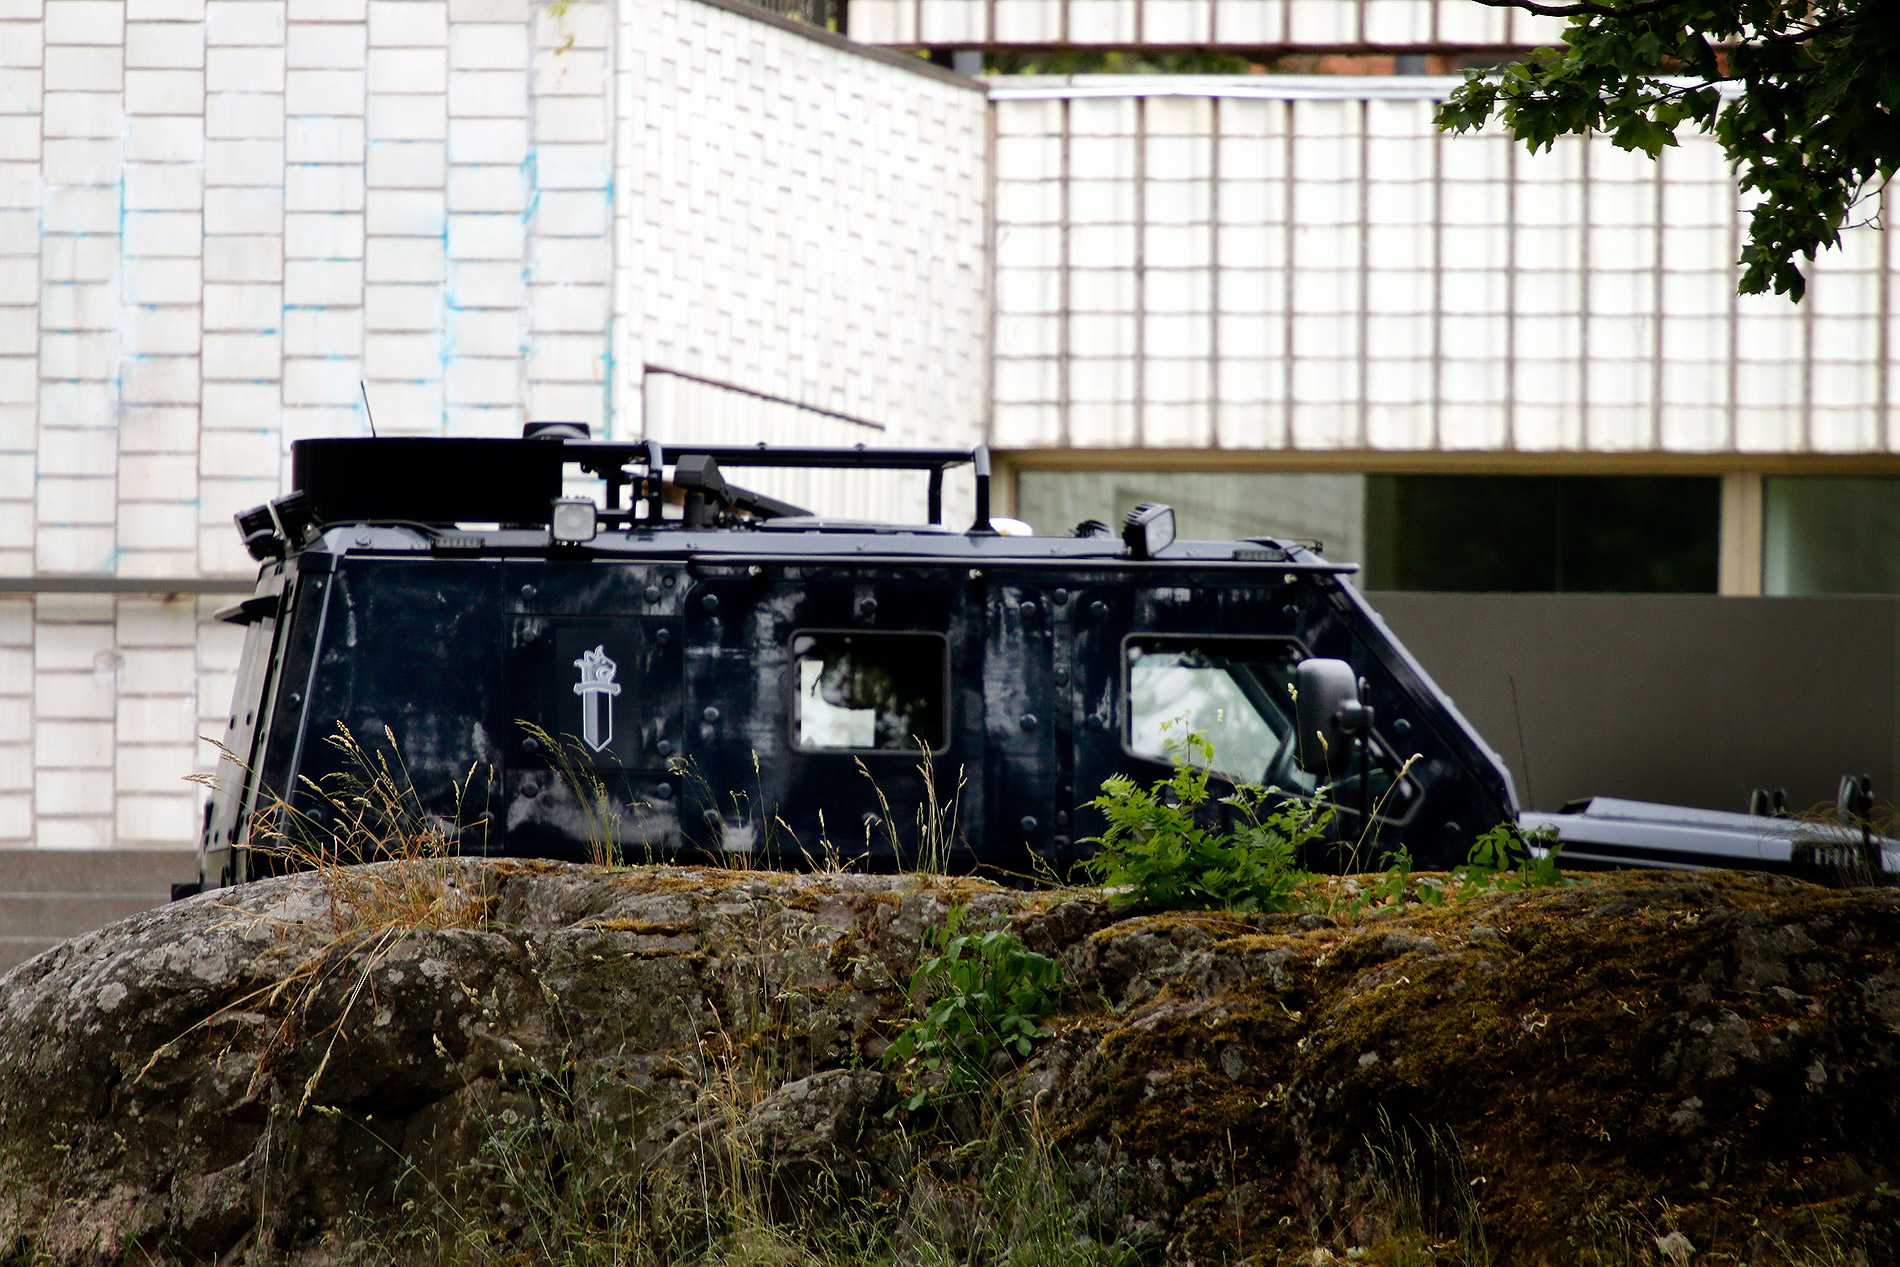 An armored police vehicle at the Helsinki City Theatre on June 29, 2020. Picture: Tony Öhberg/Finland Today